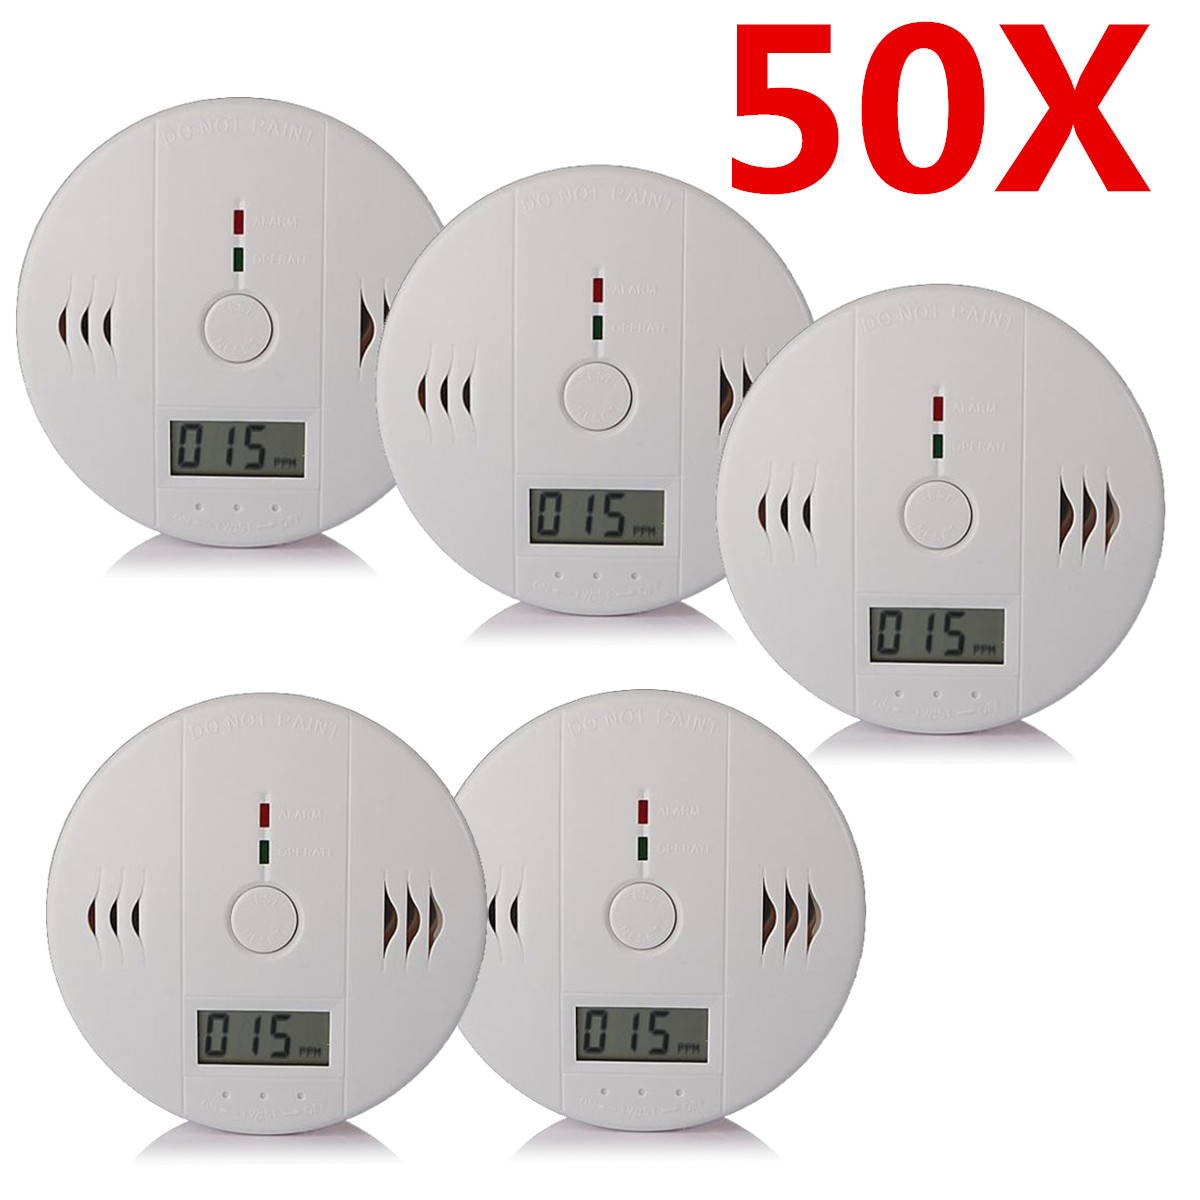 1-50 Pcs Battery Powerd LCD CO Carbon Monoxide Alarm Fire Sensor Detector Sound & LED Flash Alarm Combo Detector Tester Monitor with Digital Display Home Safety